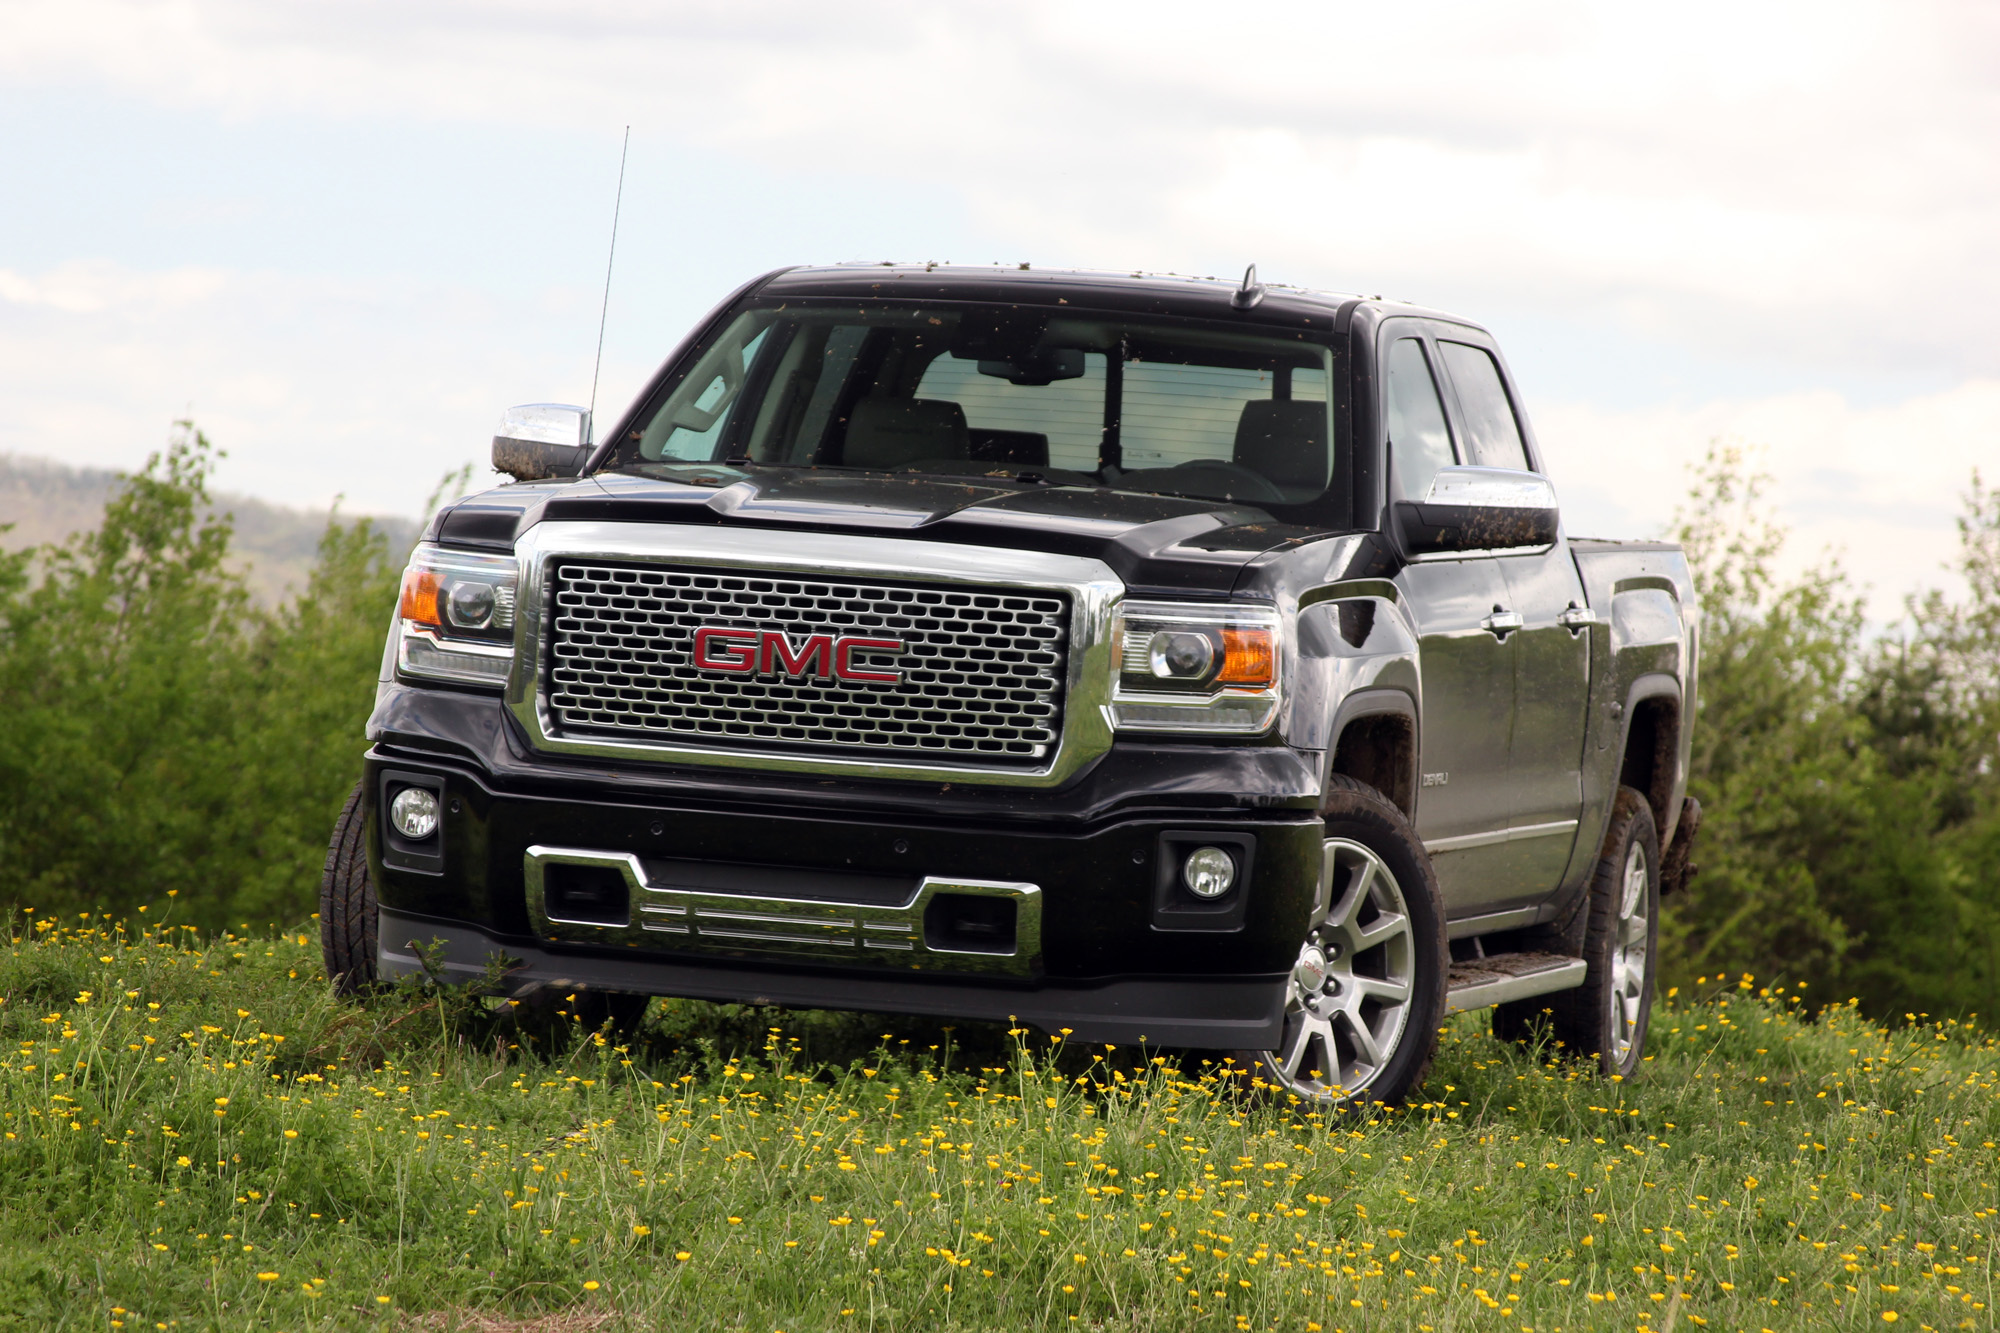 2015 gmc sierra denali 1500 review autotalk. Black Bedroom Furniture Sets. Home Design Ideas